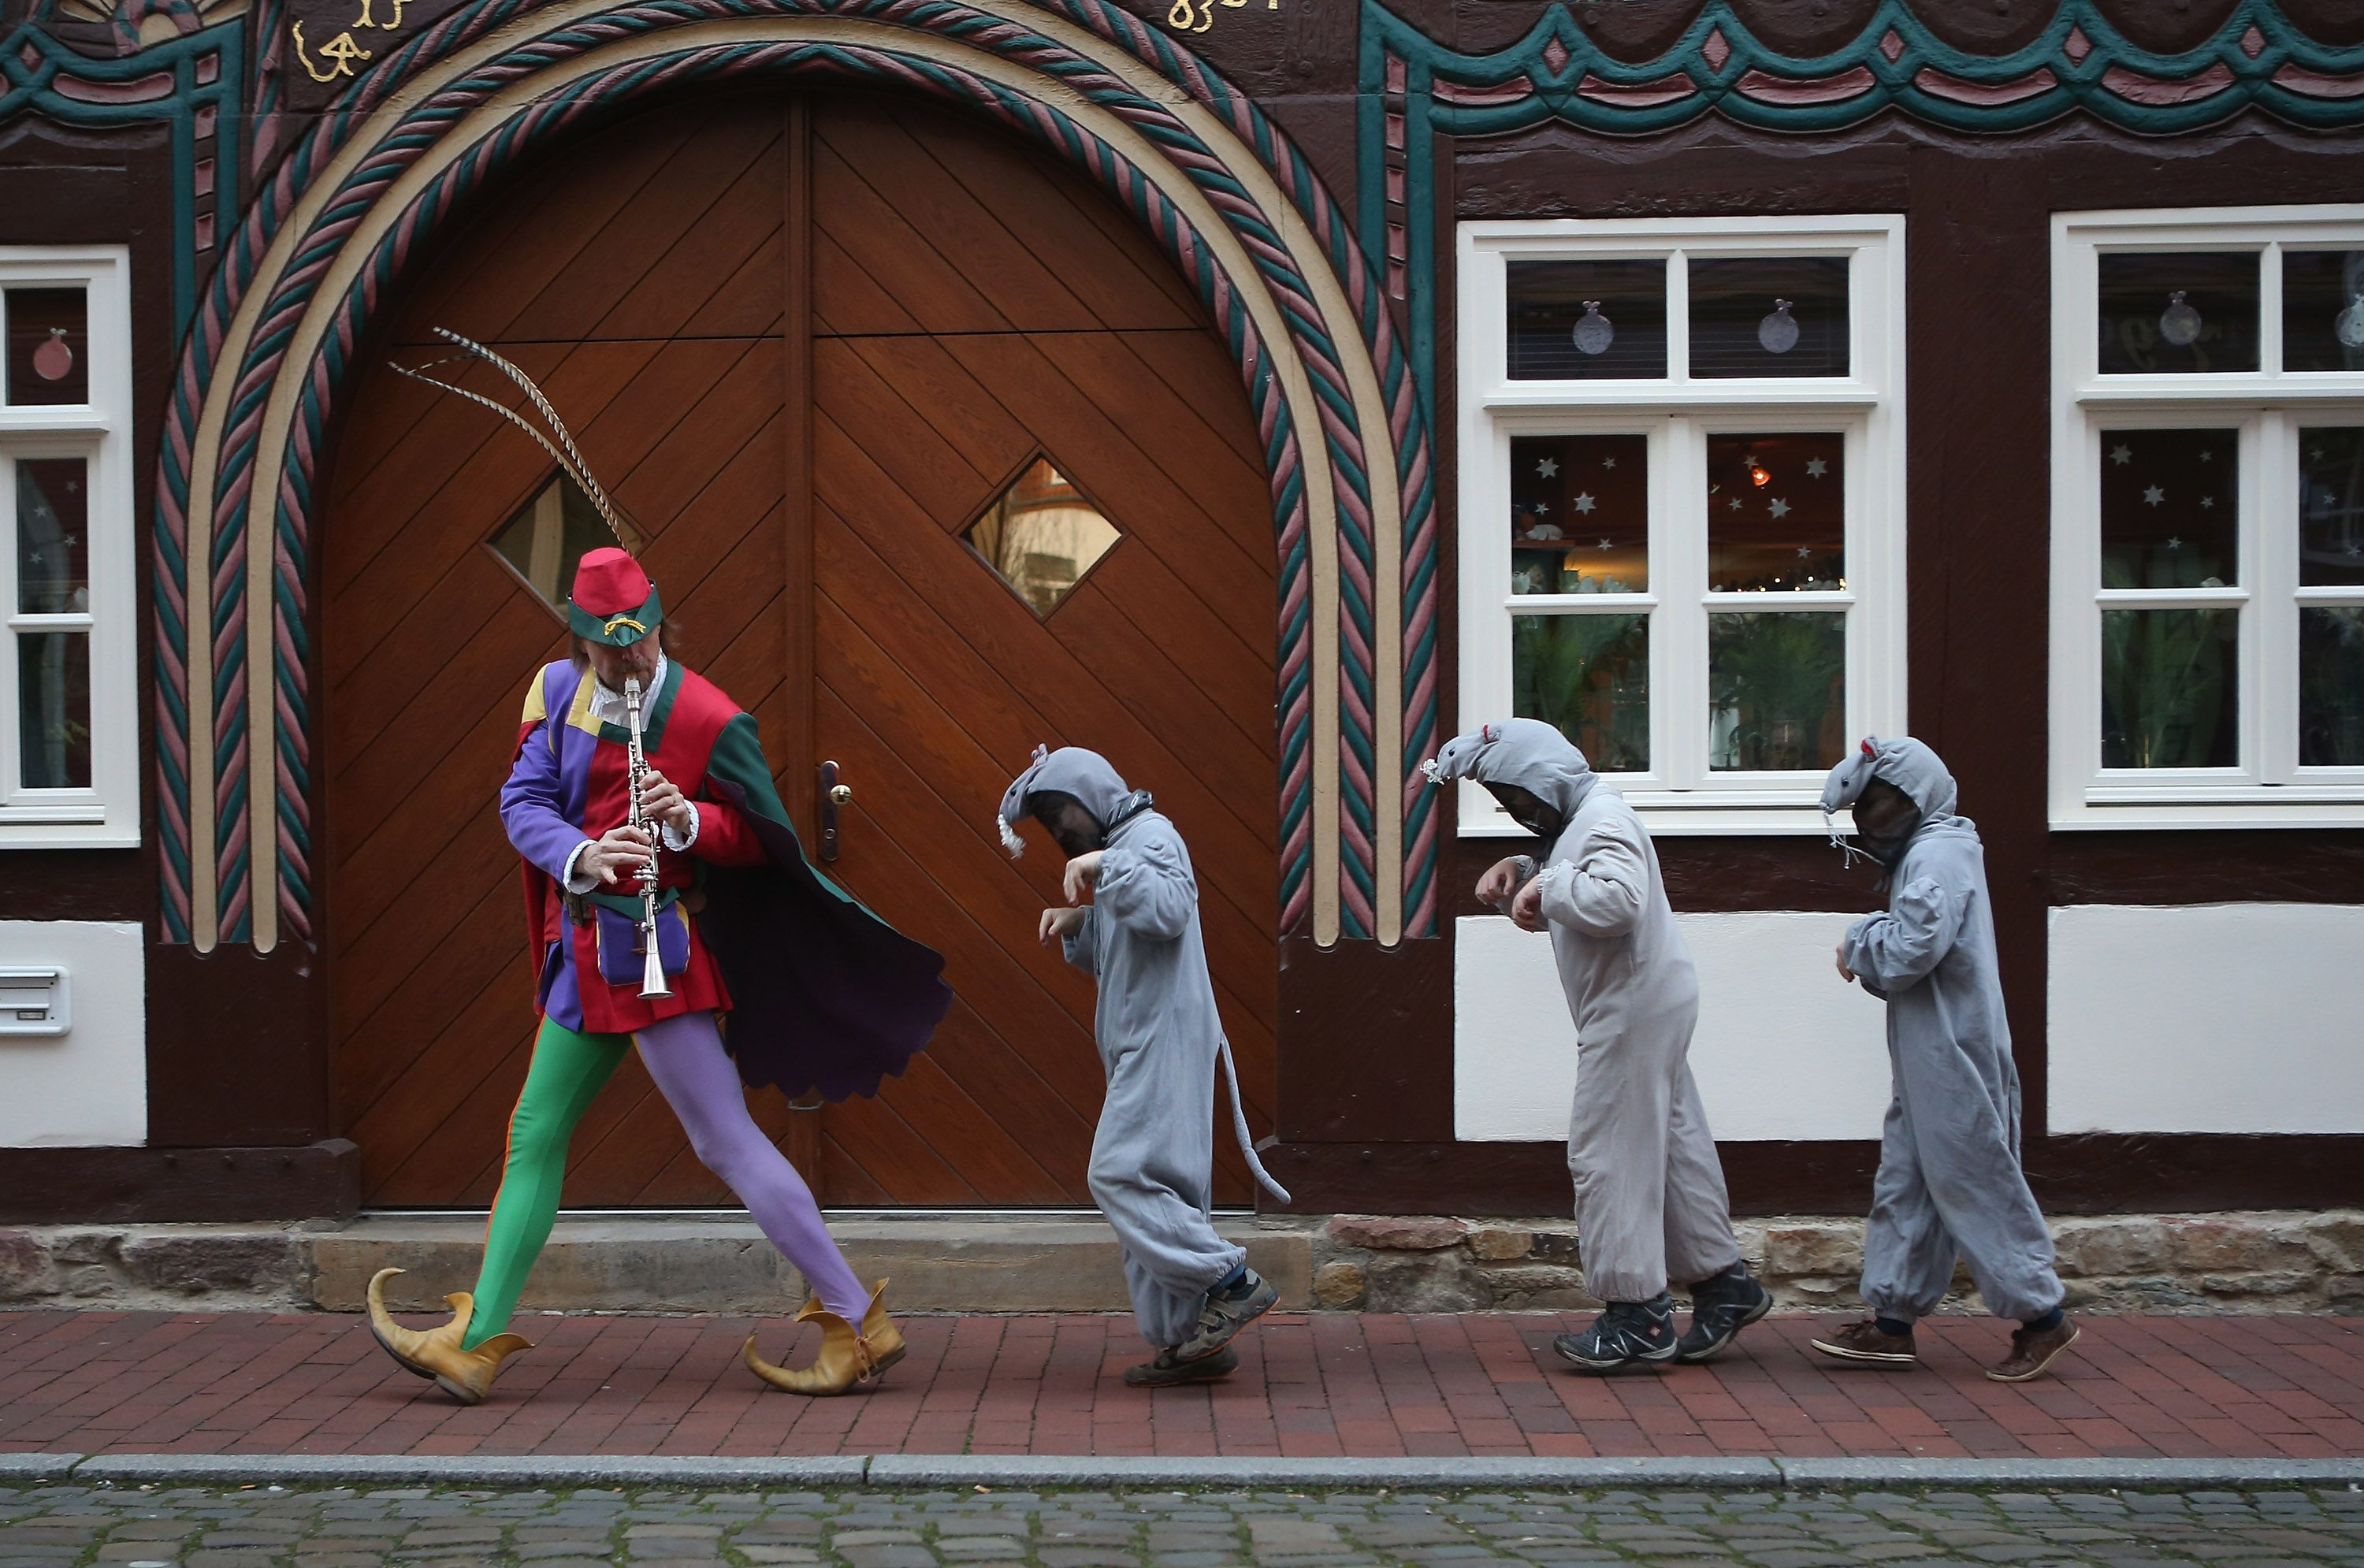 The Pied Piper of Hamelin, actually city tourism employee Michael Boyer, leads local children dressed as rats through a quiet street on November 19, 2012 in Hameln, Germany.